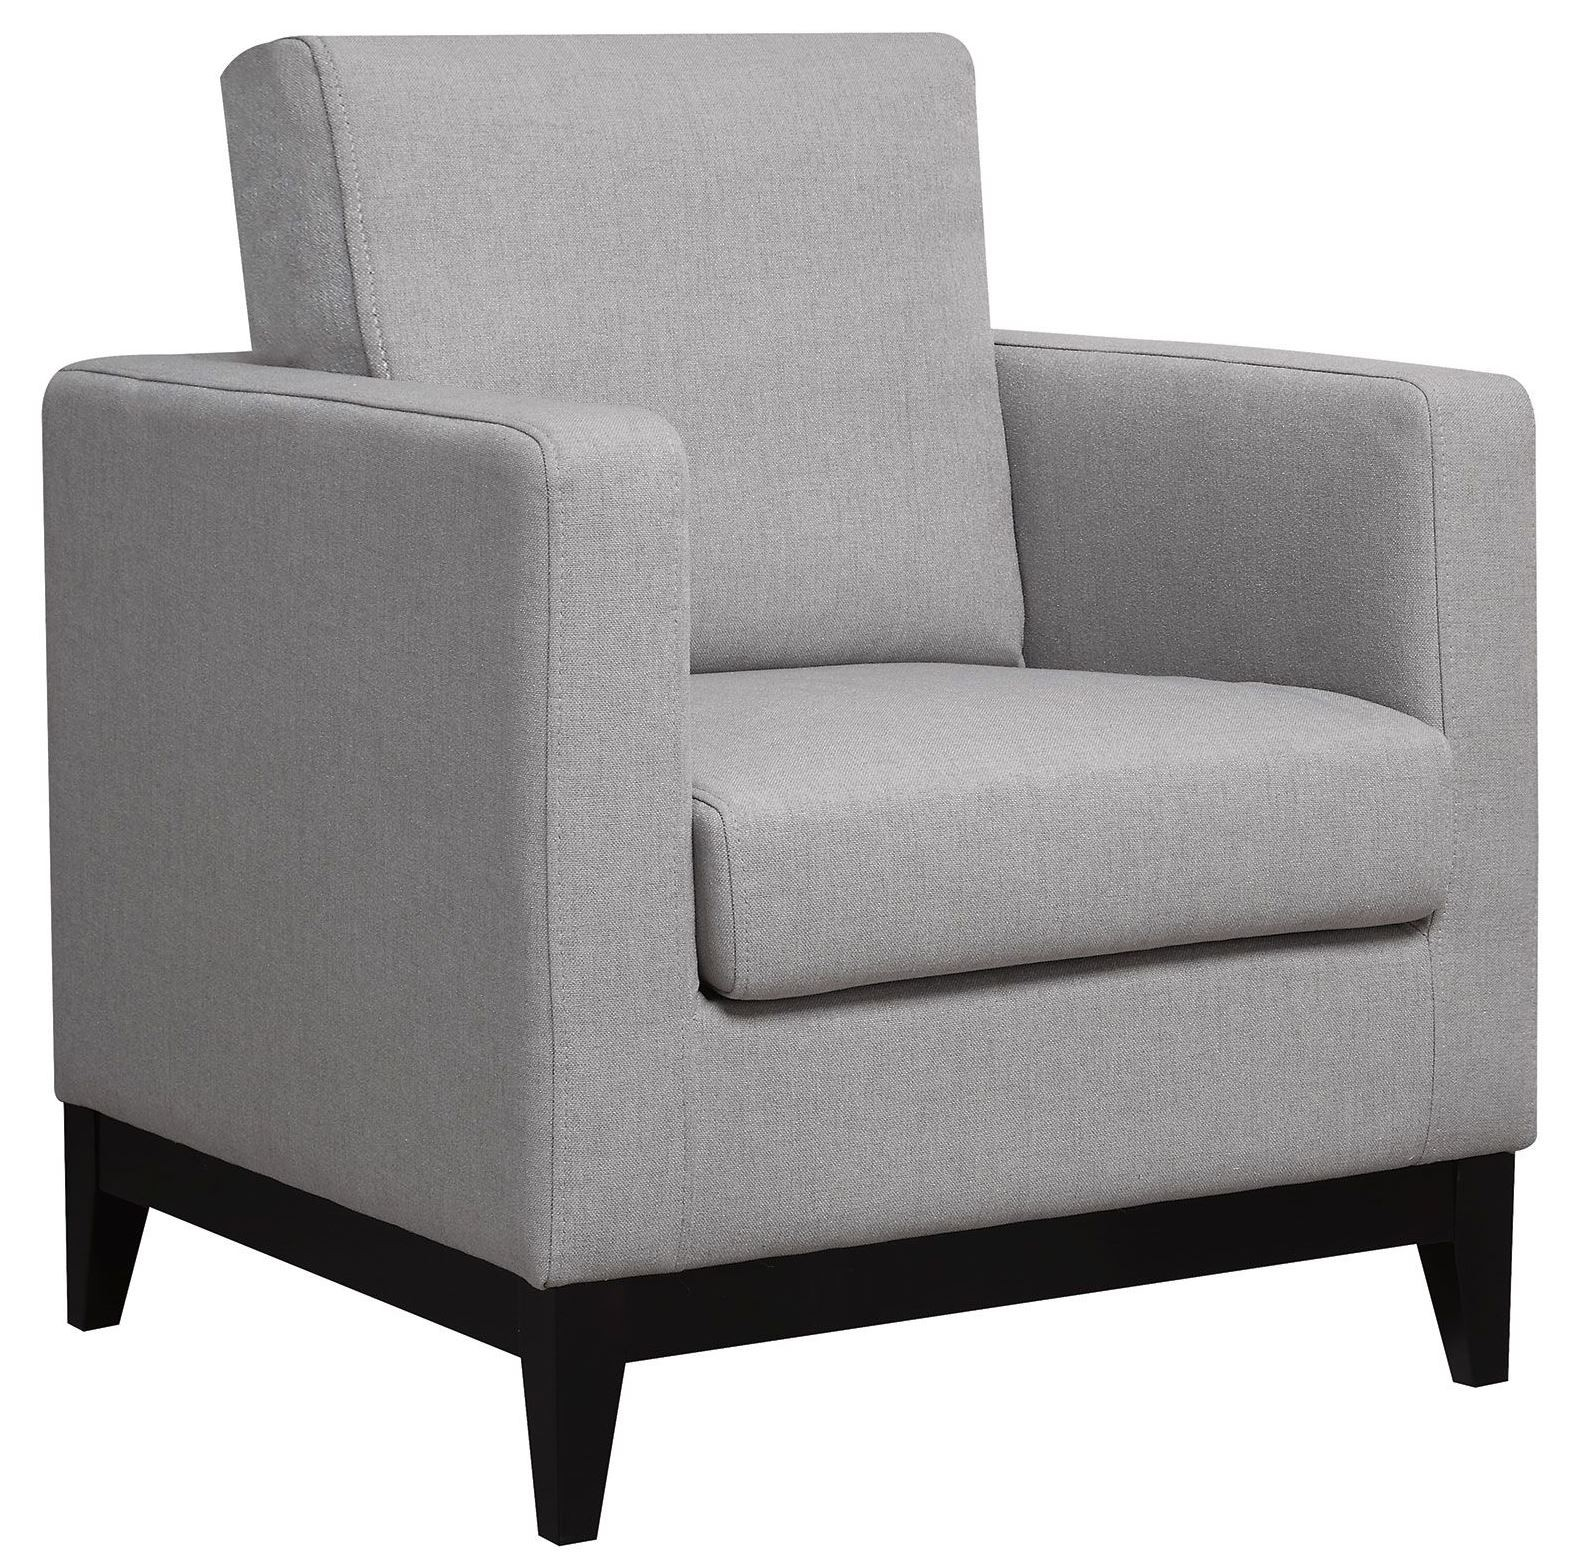 Light Grey Accent Chair from Coaster